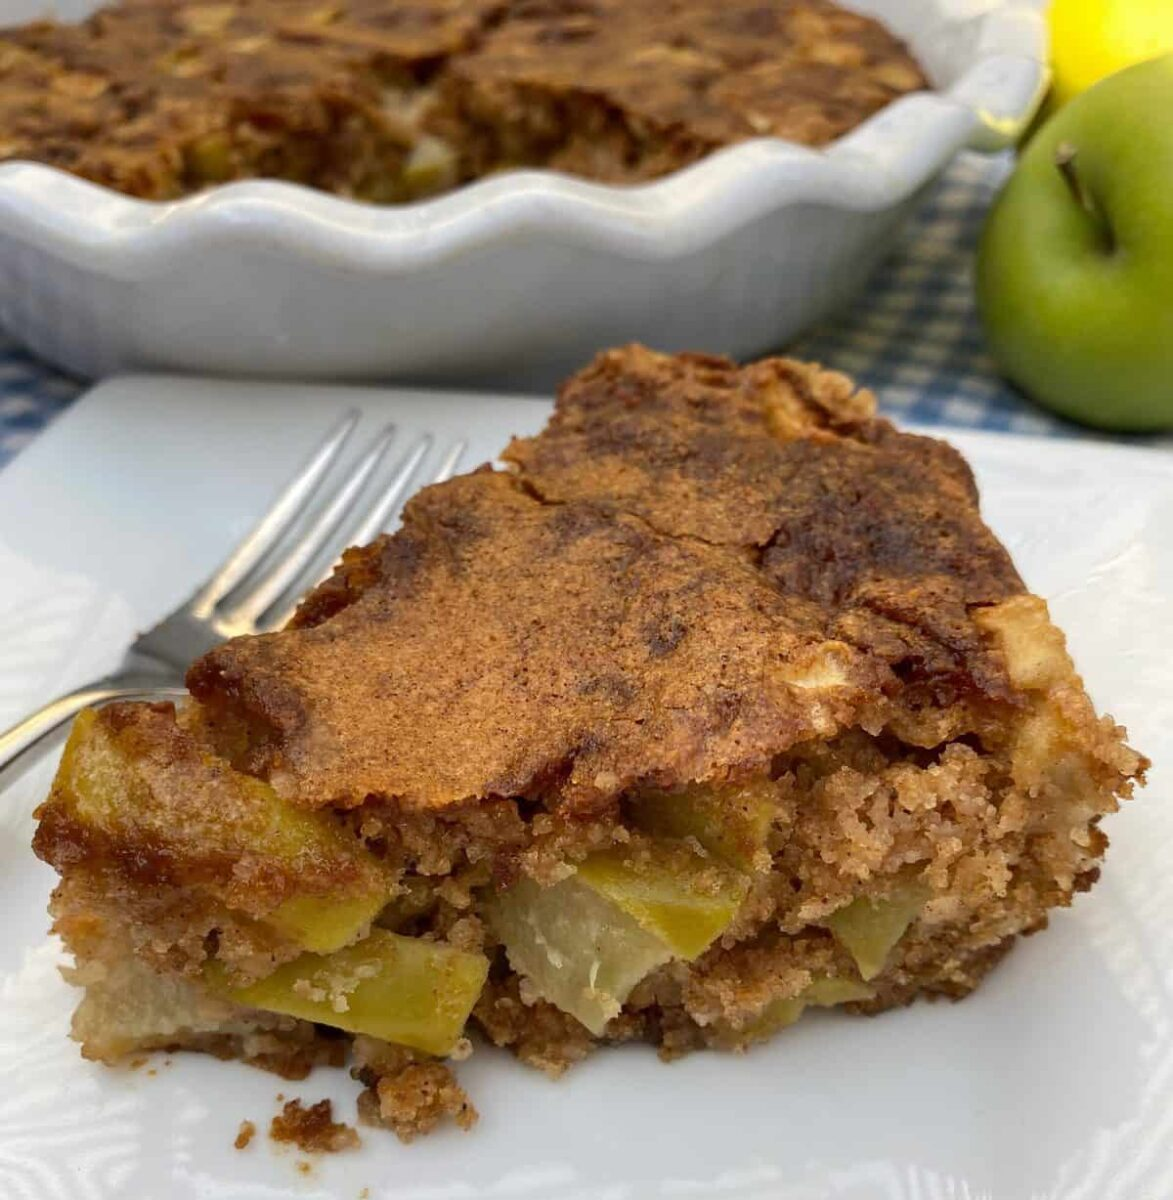 A wedge of apple cake with the baking dish and an apple in the background.